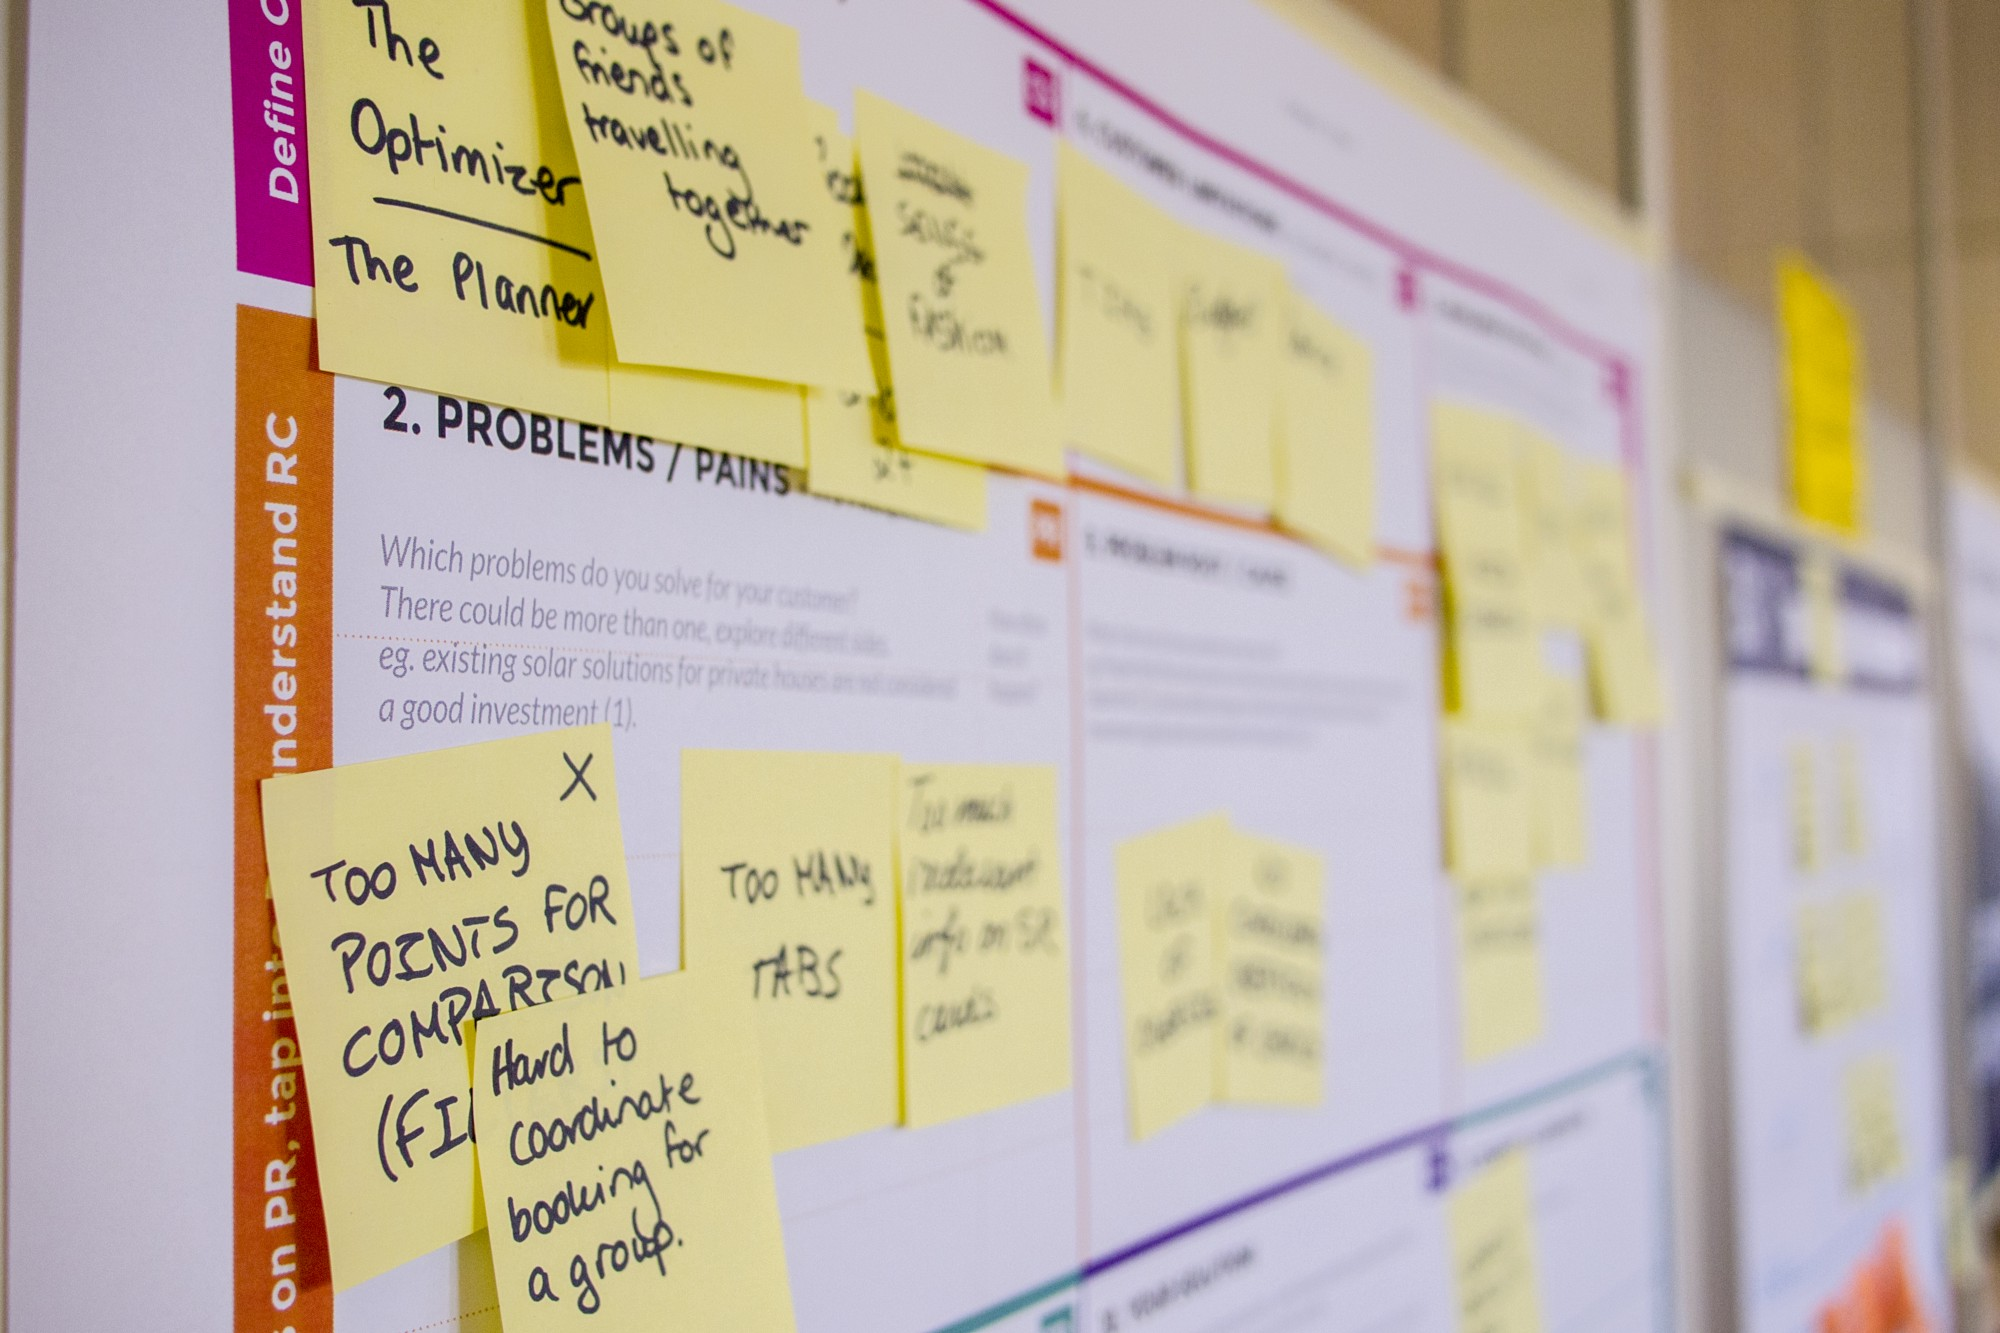 Sample image of a design thinking workshop presented on a whiteboard.